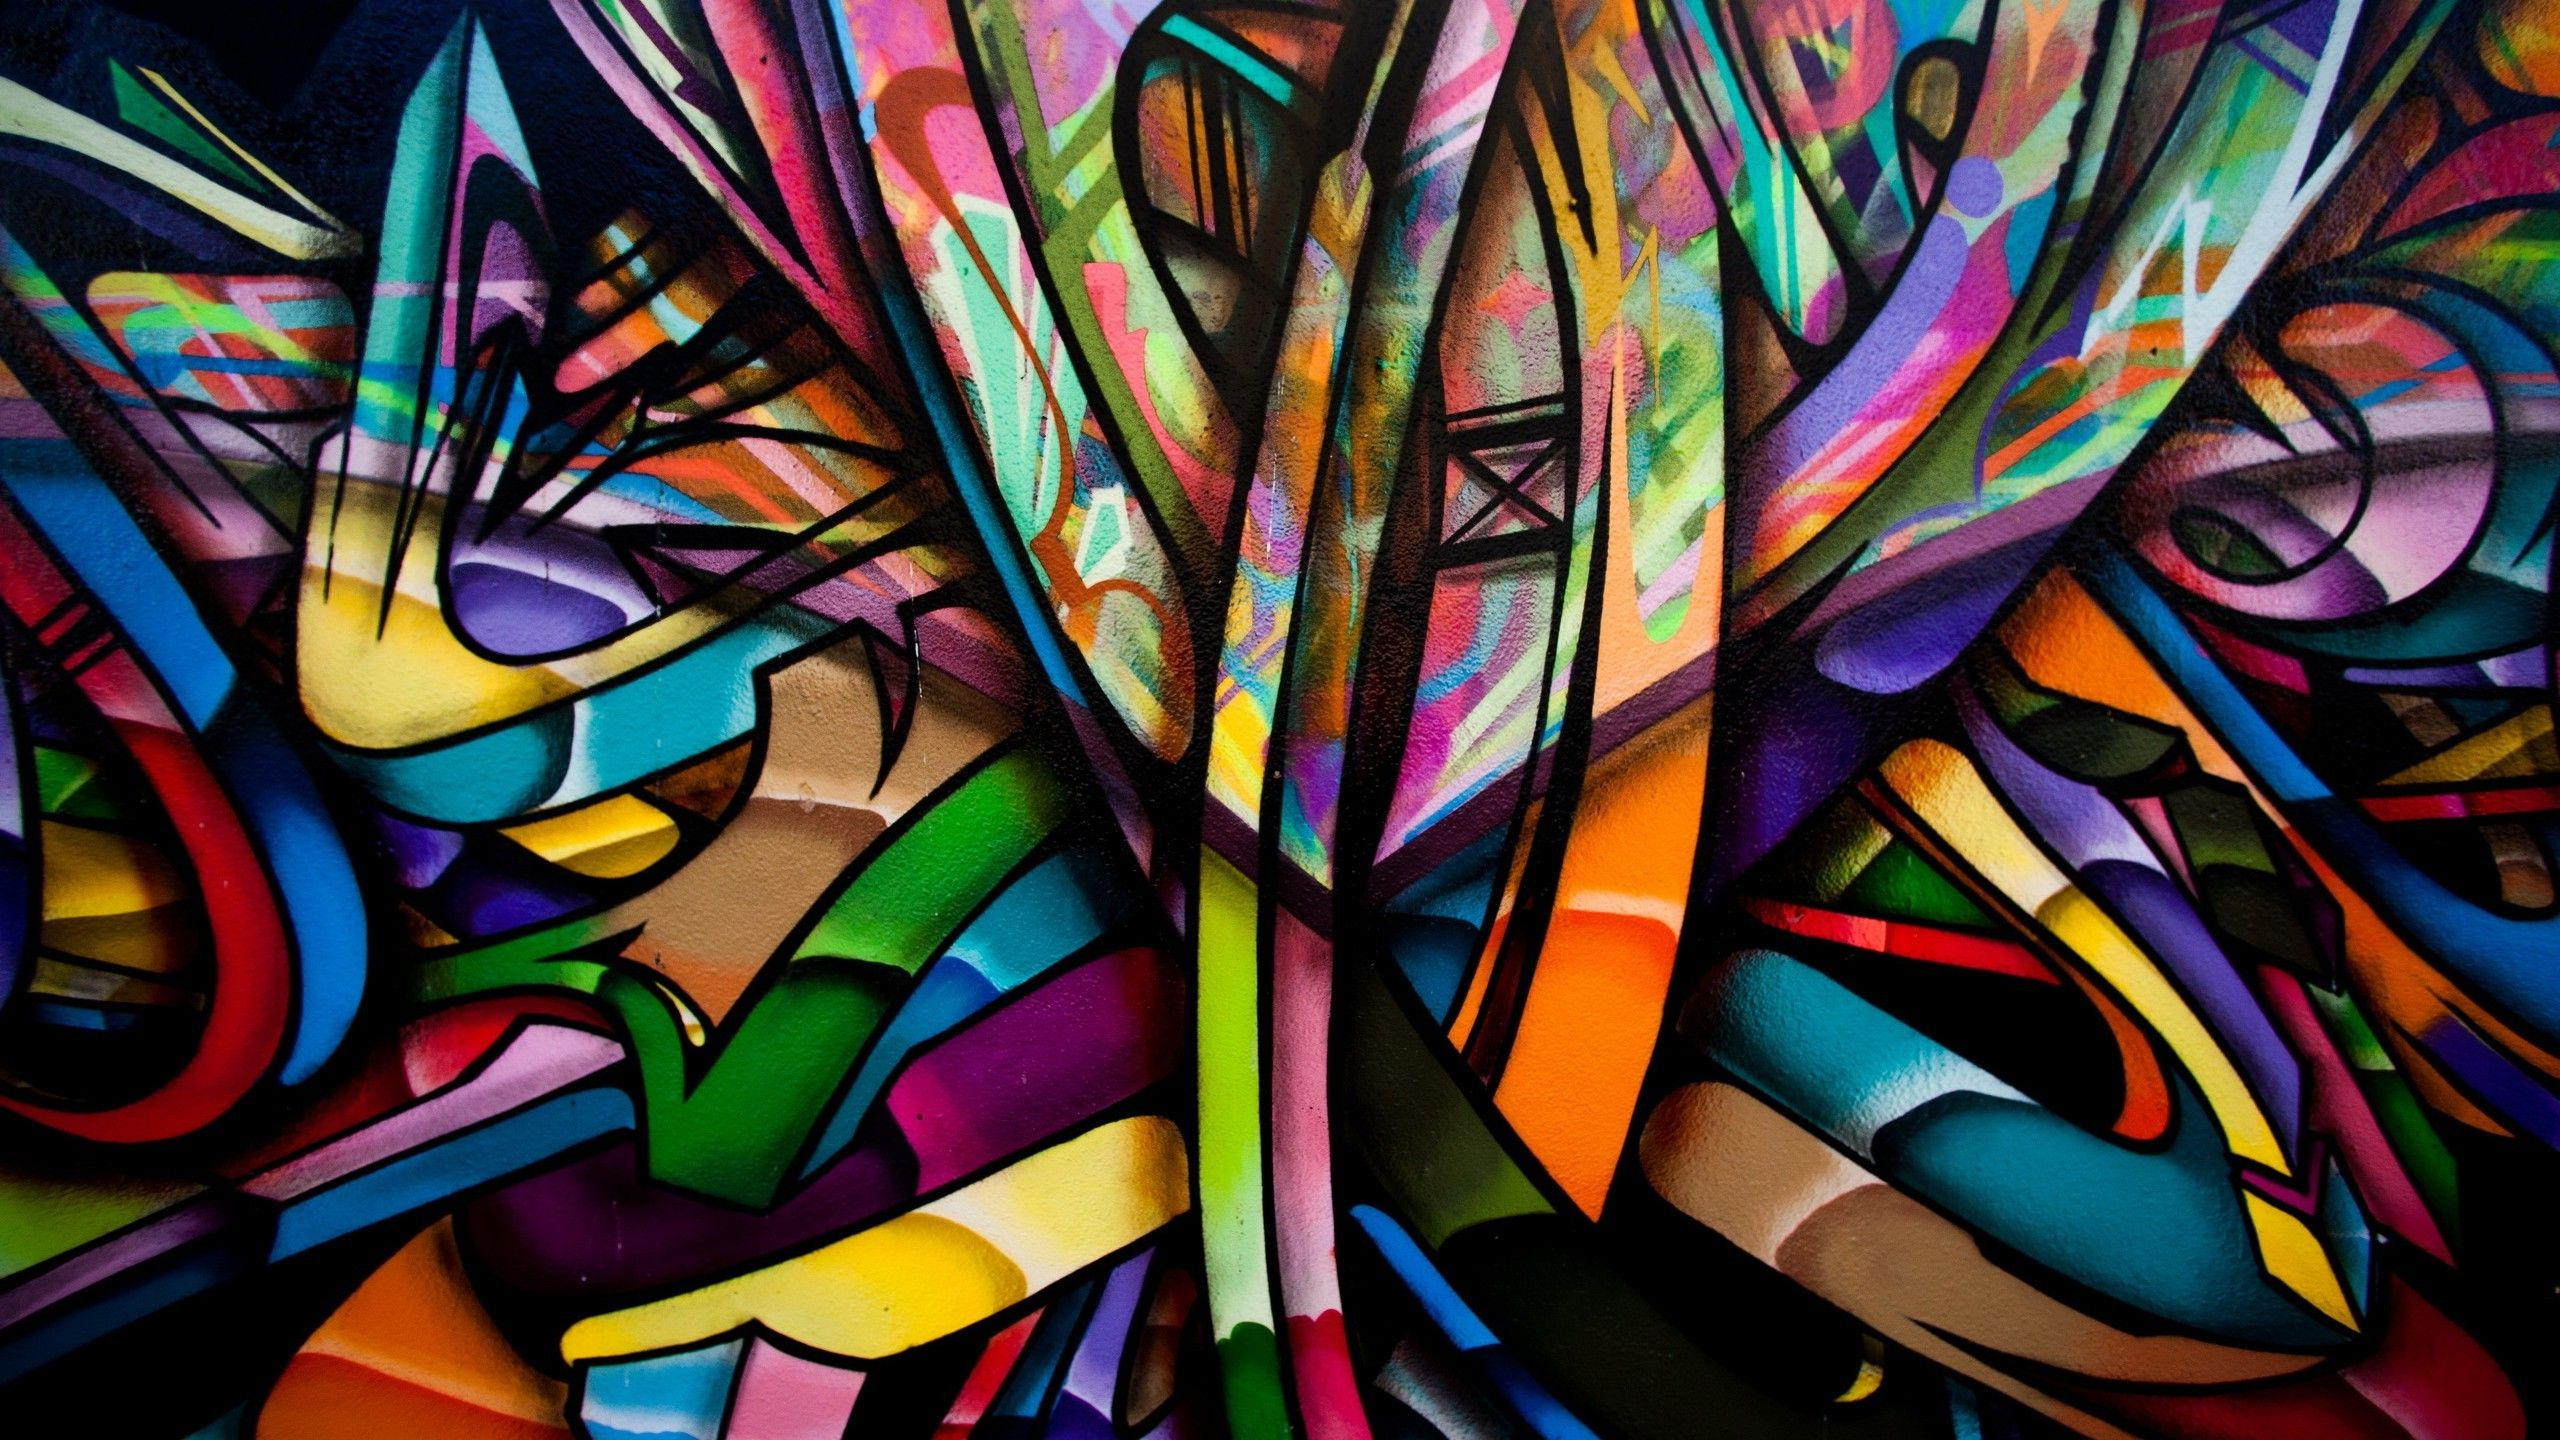 Abstract colorful graffiti walls artwork painting for Colourful wallpaper for walls